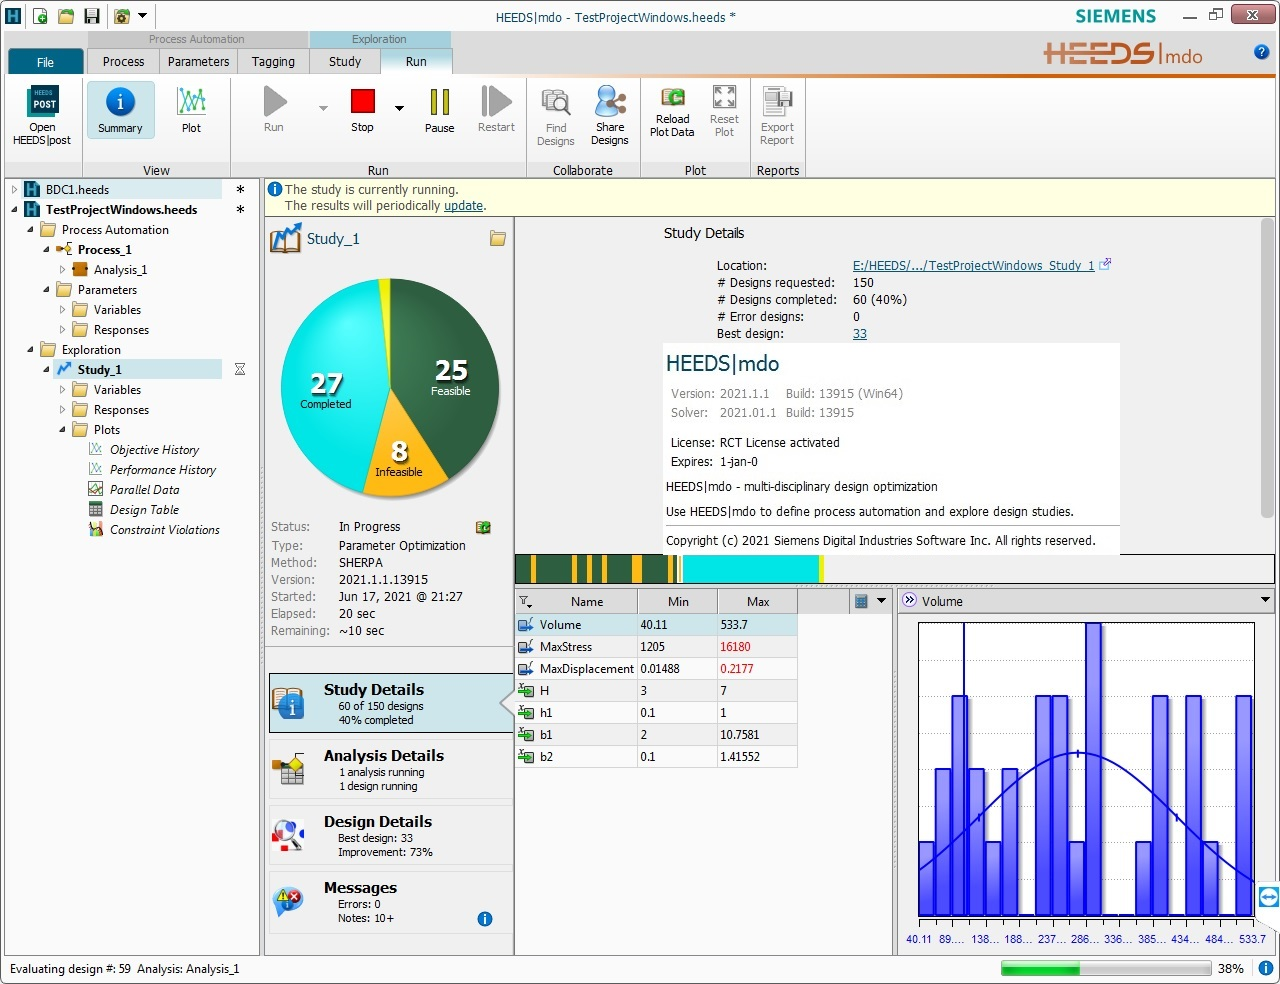 Working with Siemens HEEDS MDO 2021.1.1 + VCollab 2015 full